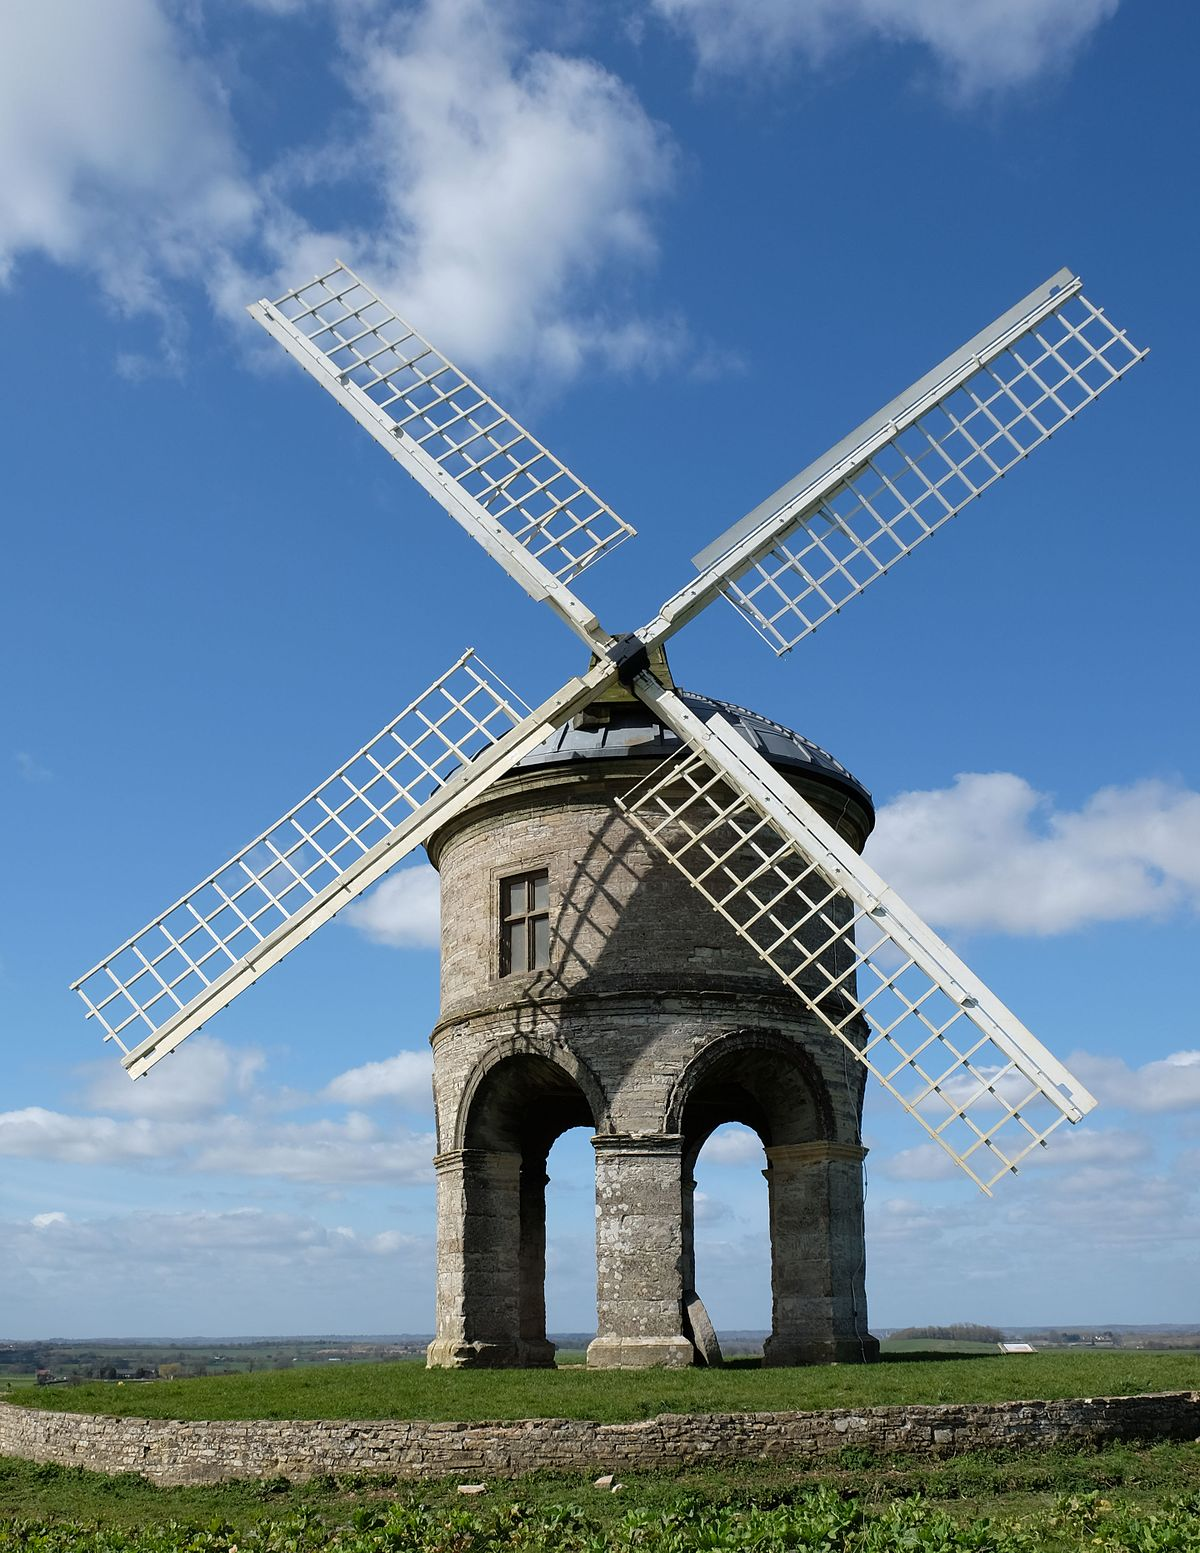 chesterton windmill wikipedia